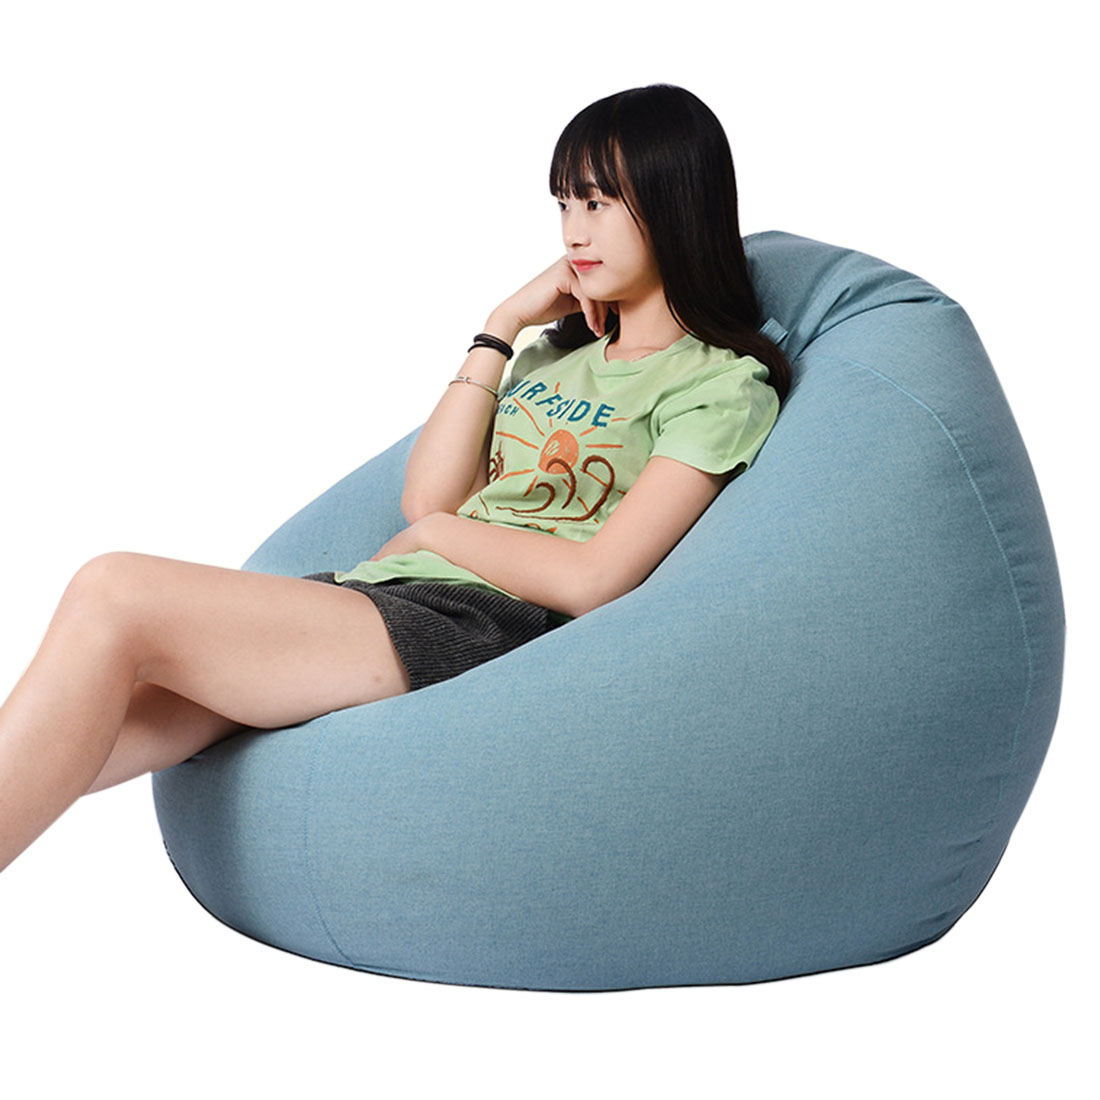 Adults Kids Bean Bag Chair Sofas Living Room Lounger Bean Bags Sofas Chair Bedroom Lazy Sofas Living Room Soft Bean Bags S/M/L